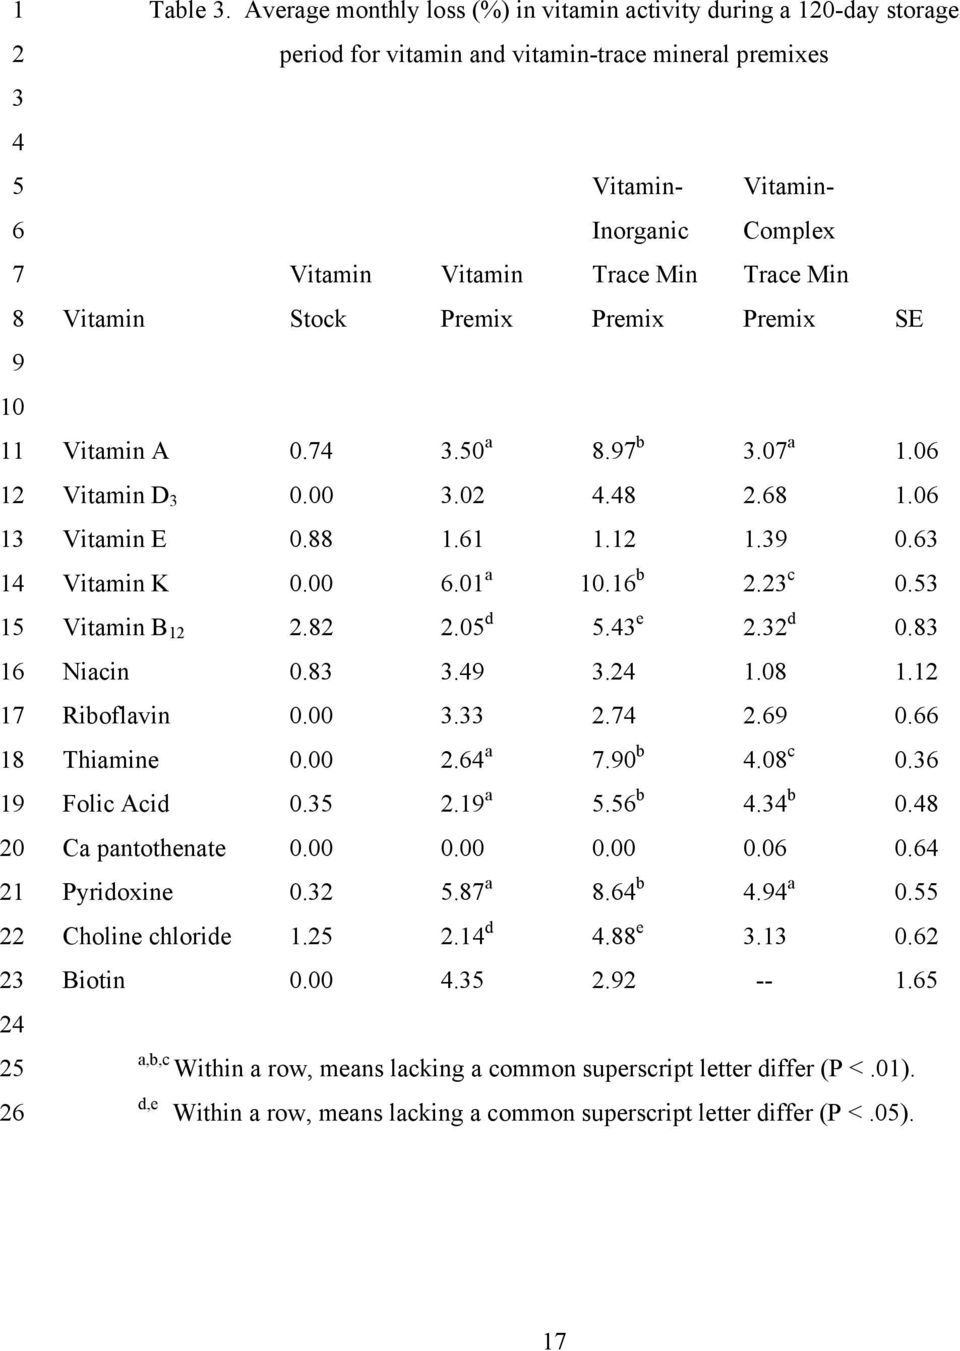 RUNNING HEAD: VITAMIN STABILITY IN TRACE MINERAL PREMIXES  Effect of